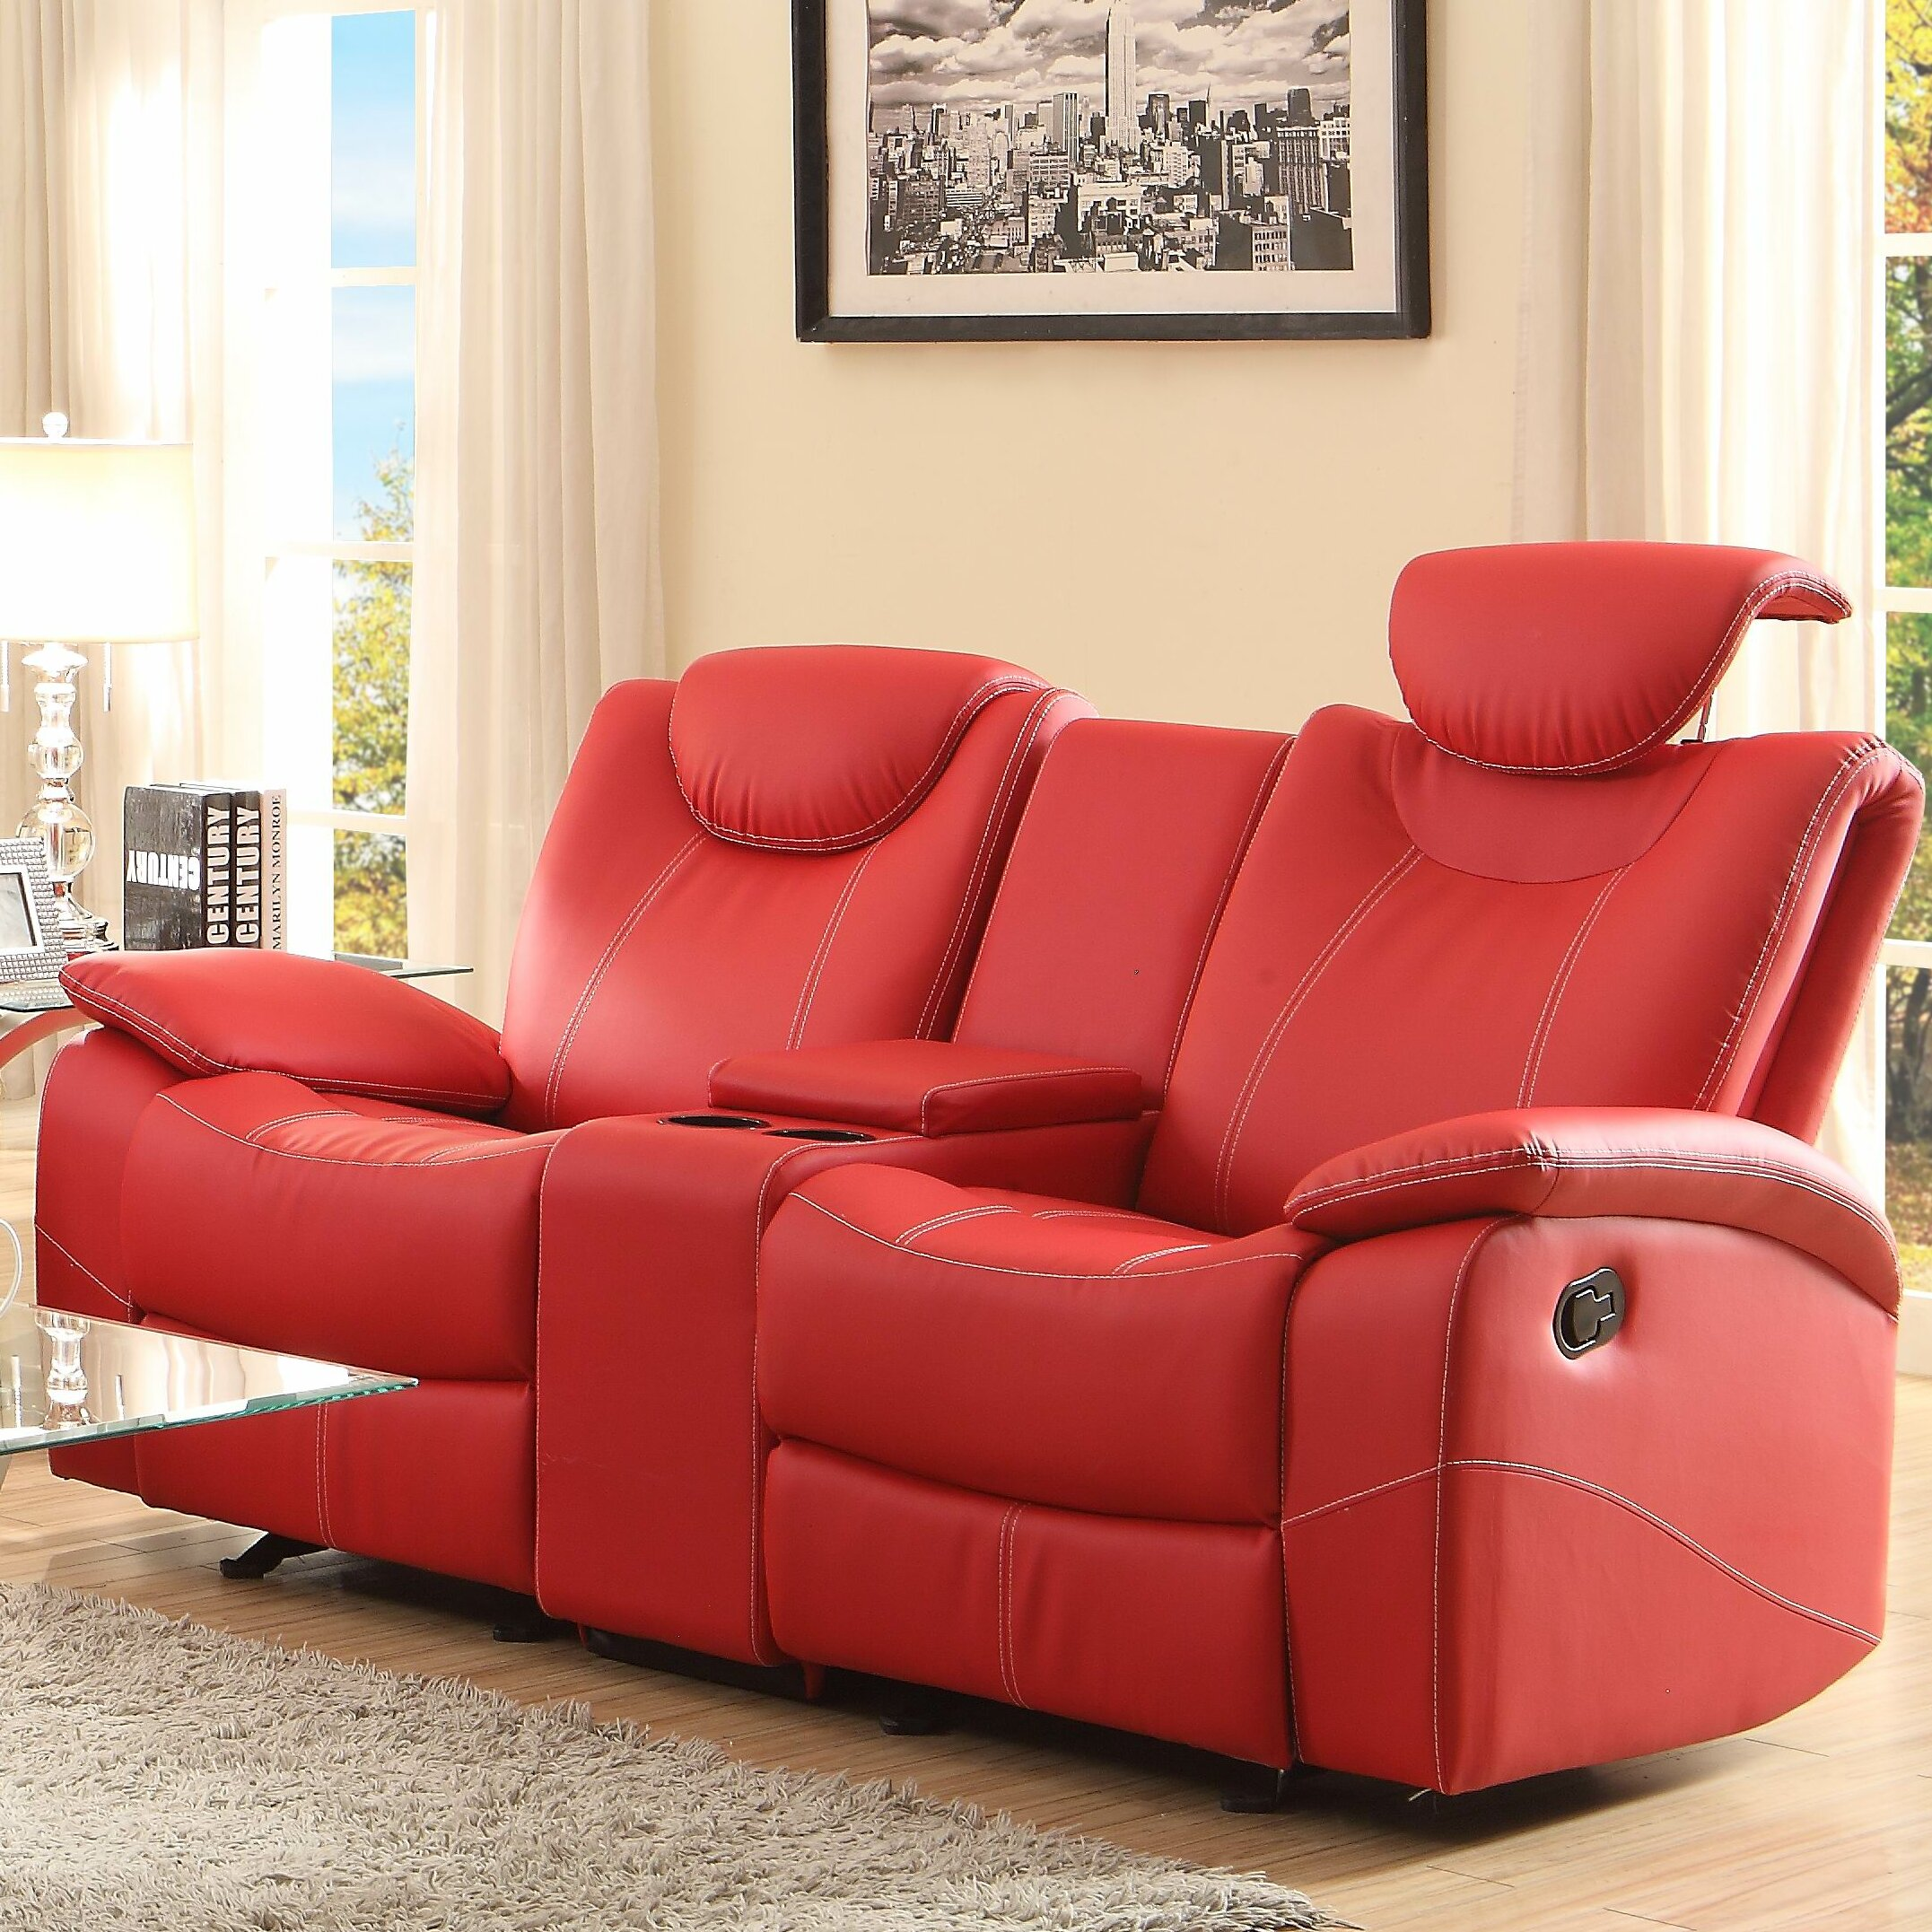 wid harrison living room sharpen loveseat hei loveseats red op